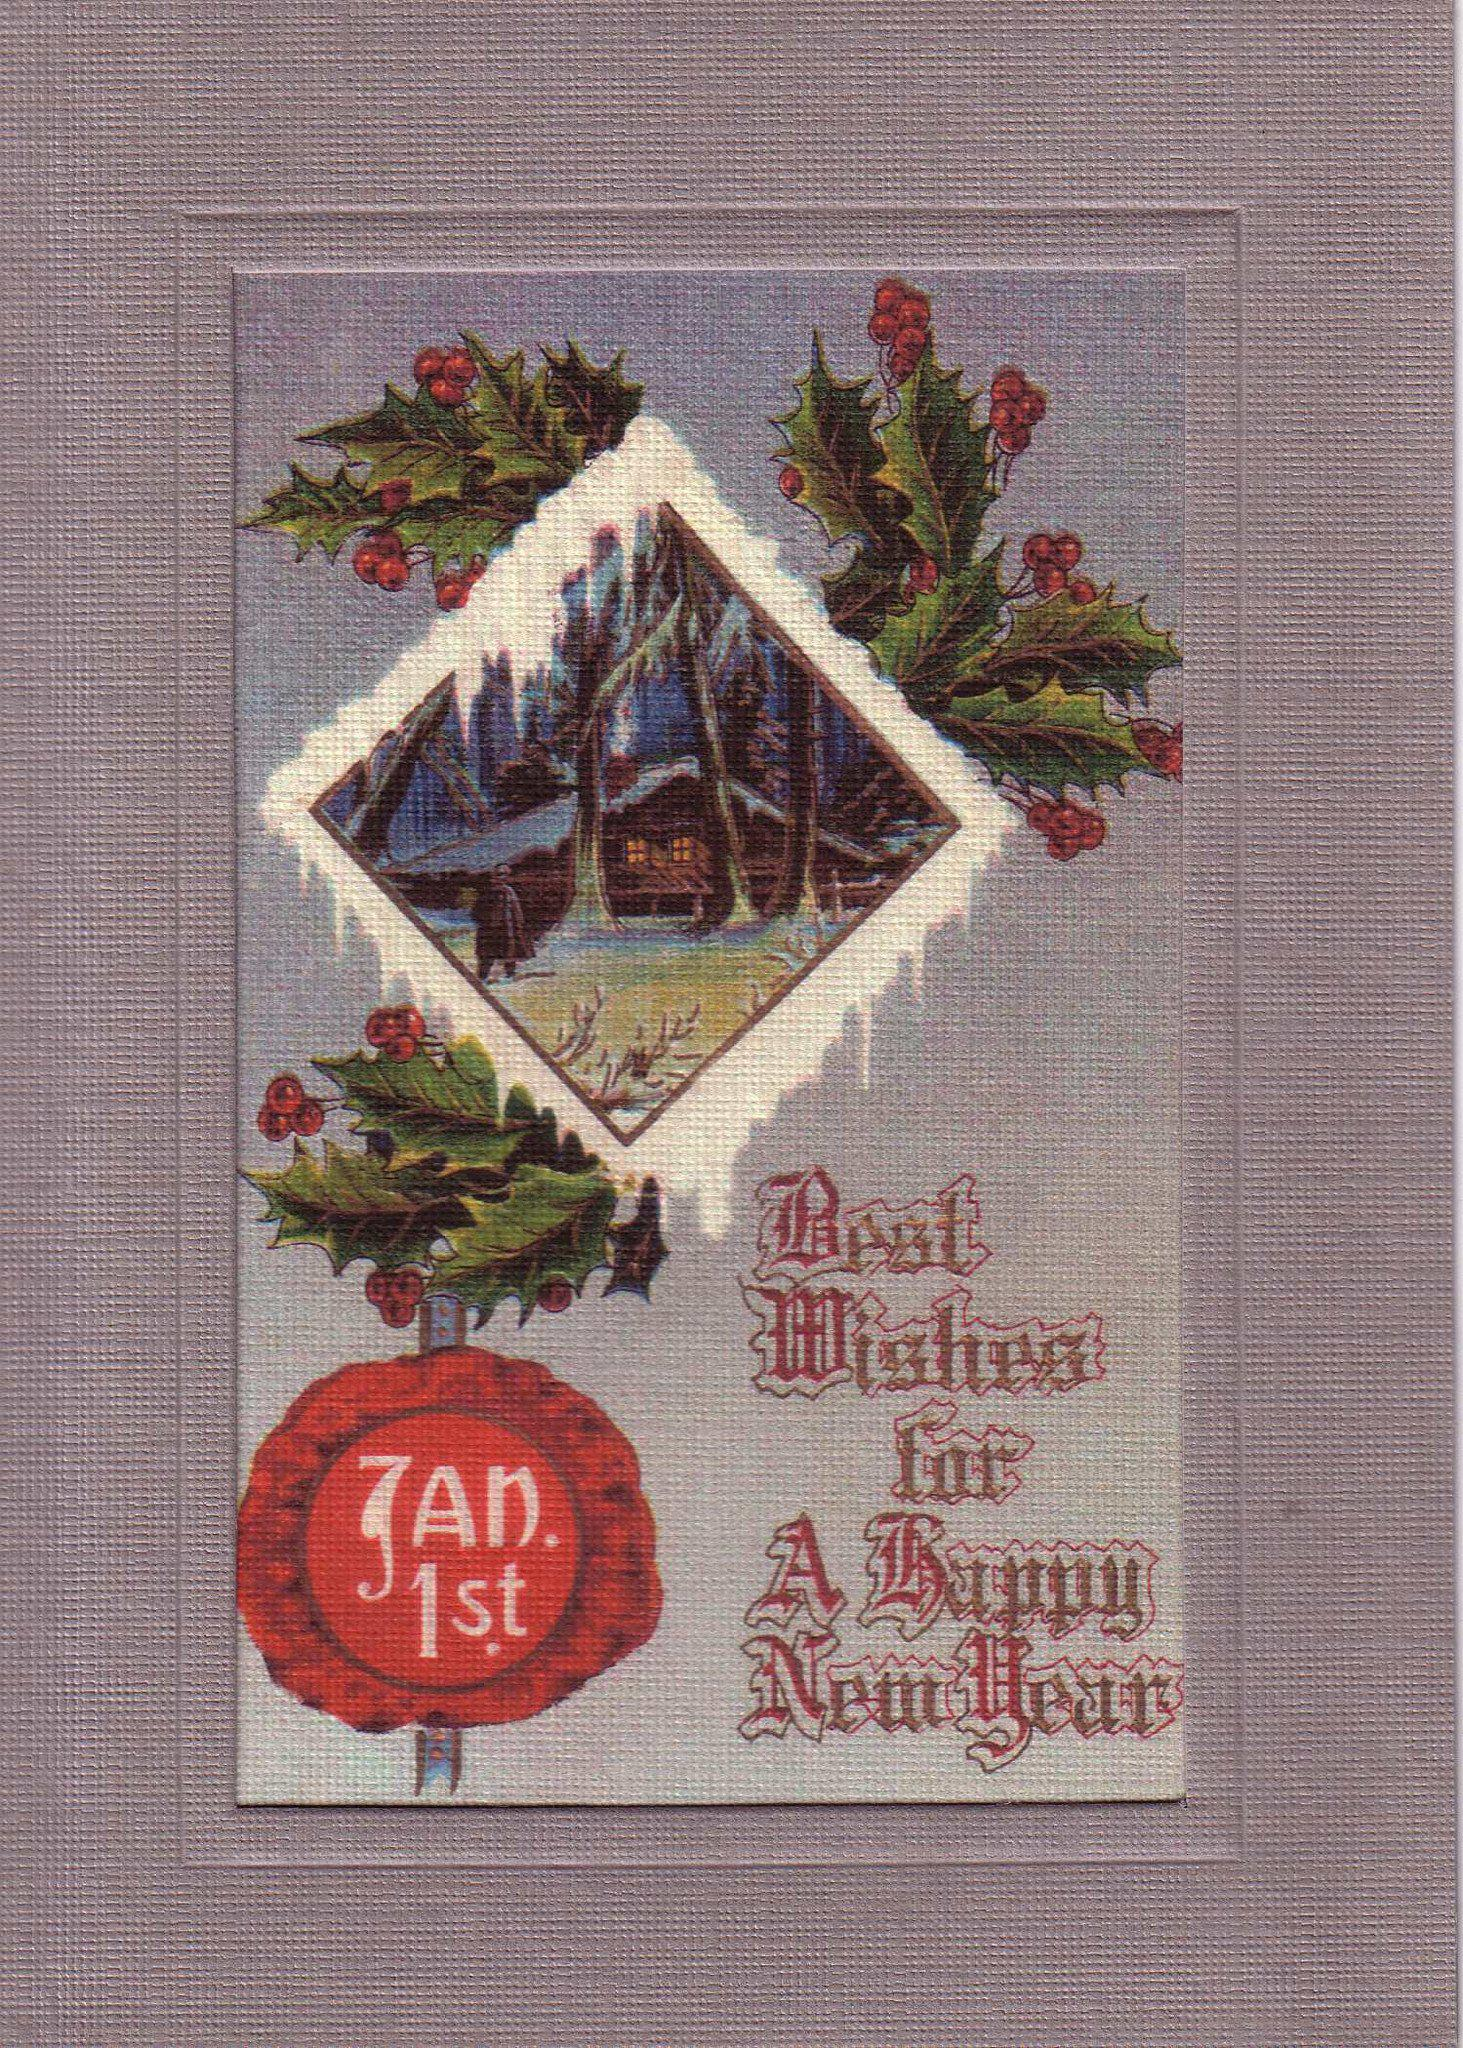 Best Wishes New Year-Greetings from the Past-Plymouth Cards